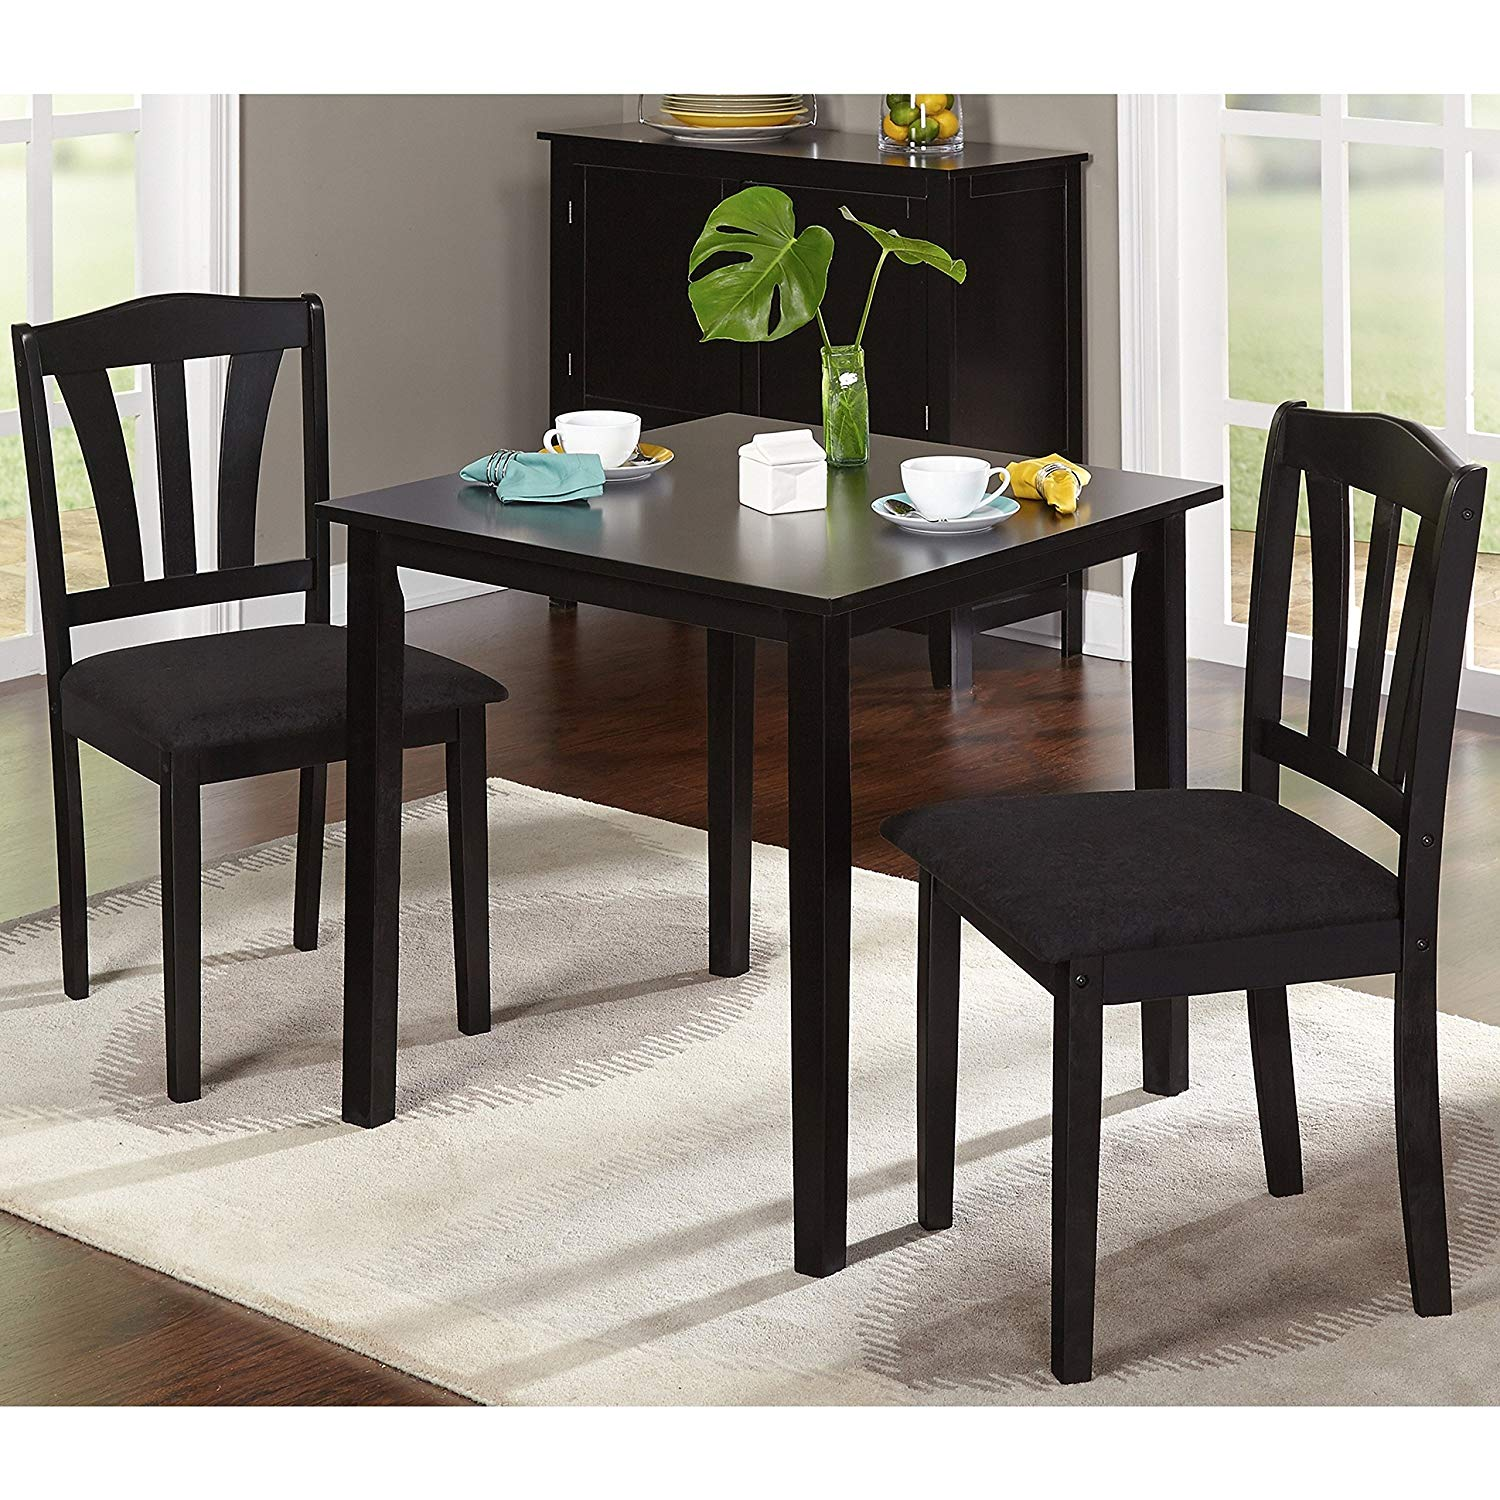 Contemporary 3-piece Dining Set, Includes 1 Table and 2 Chairs, Sturdy Rubberwood Construction, Comfortable Padded Microsuede Seating, Clean Lines and Elegant Design, Functional, Multiple Colors